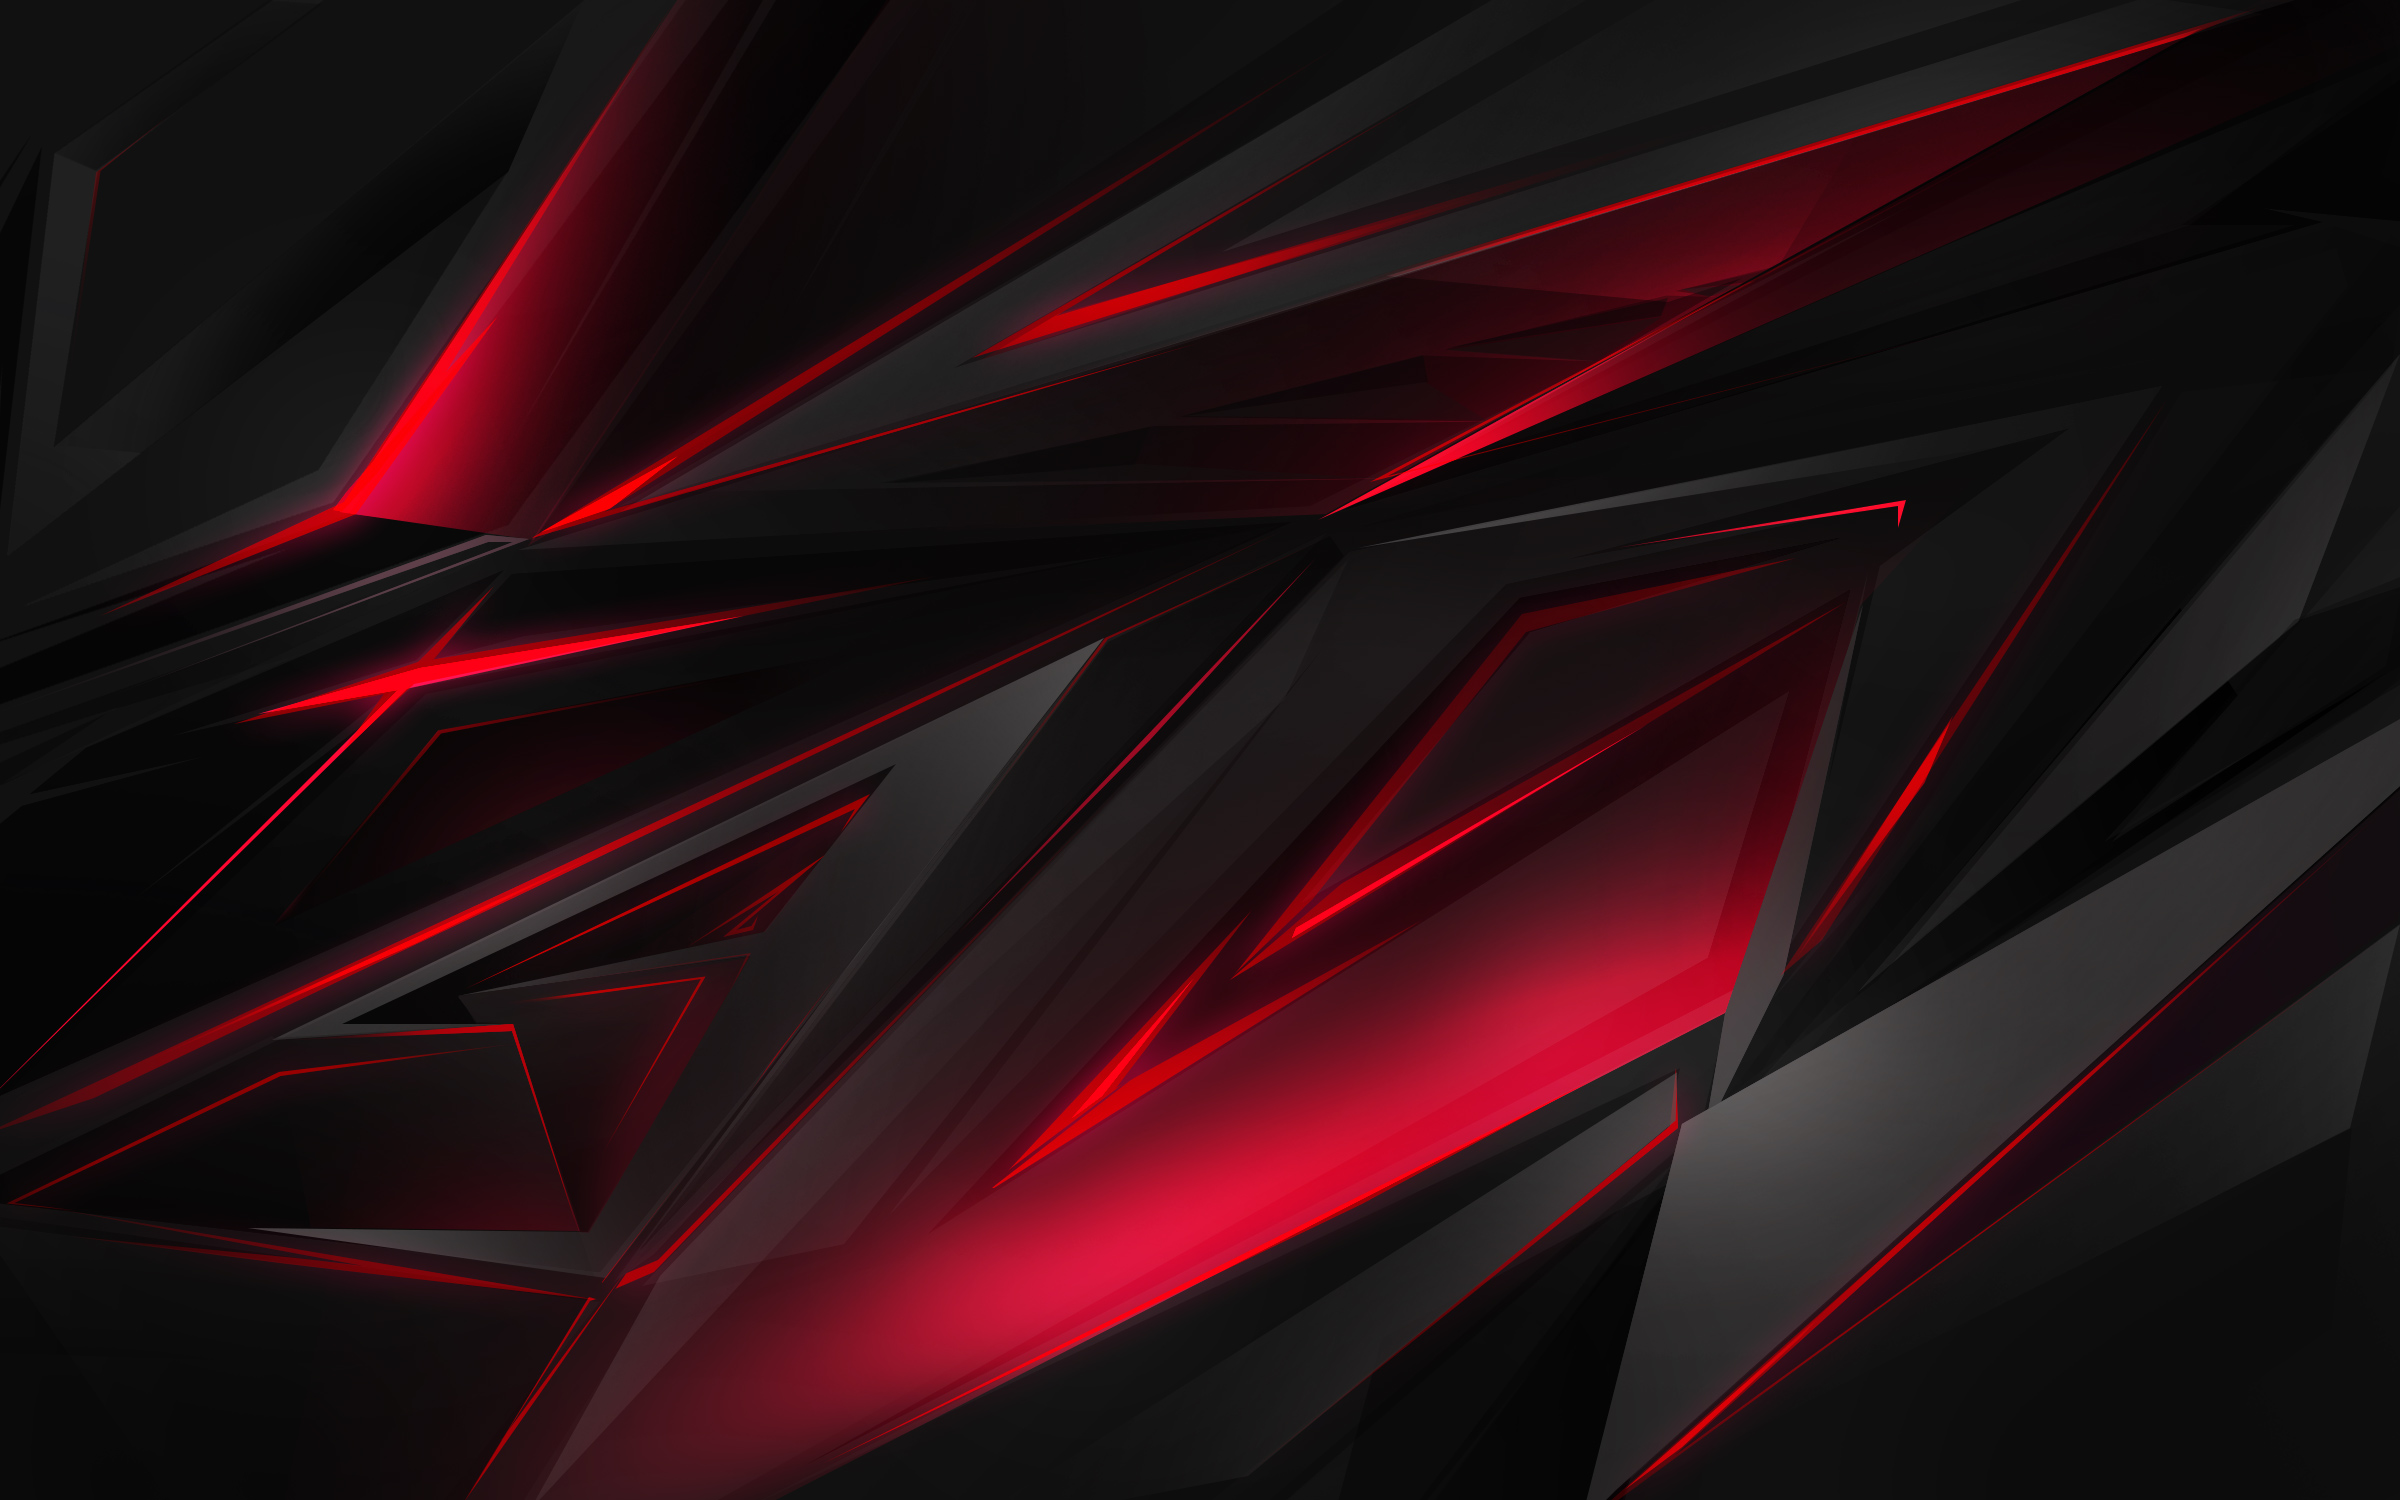 Abstract Dark Red Wallpaper Hd